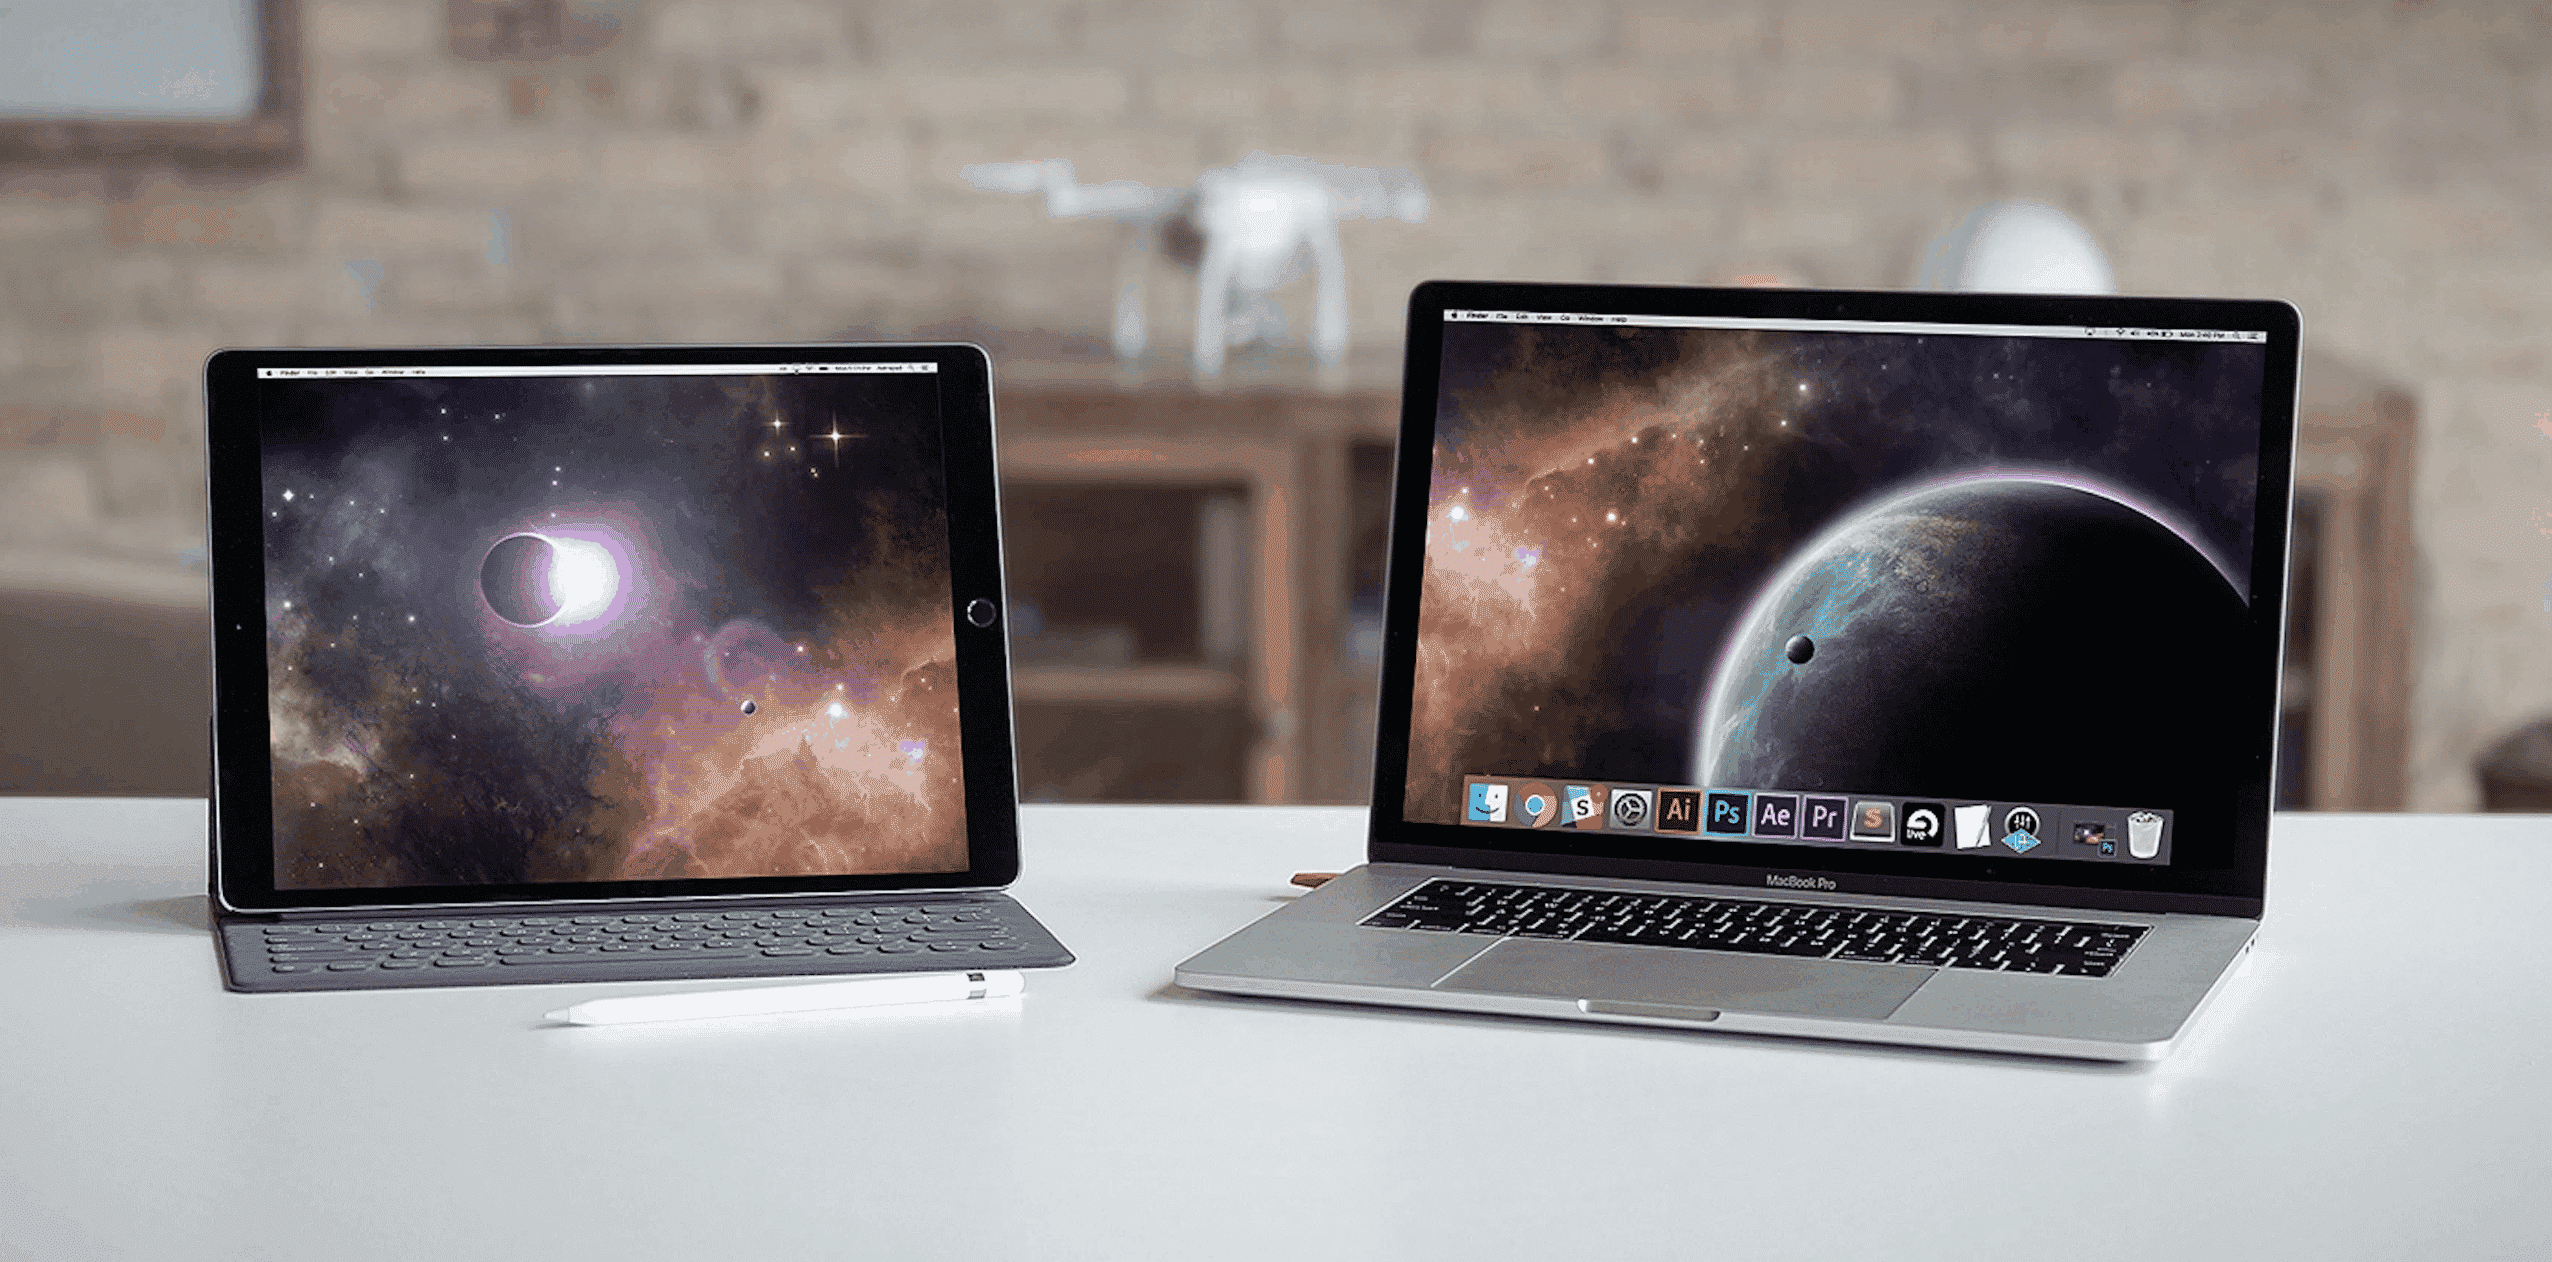 Luna Display Lets You Extend Your Mac's Display to Another